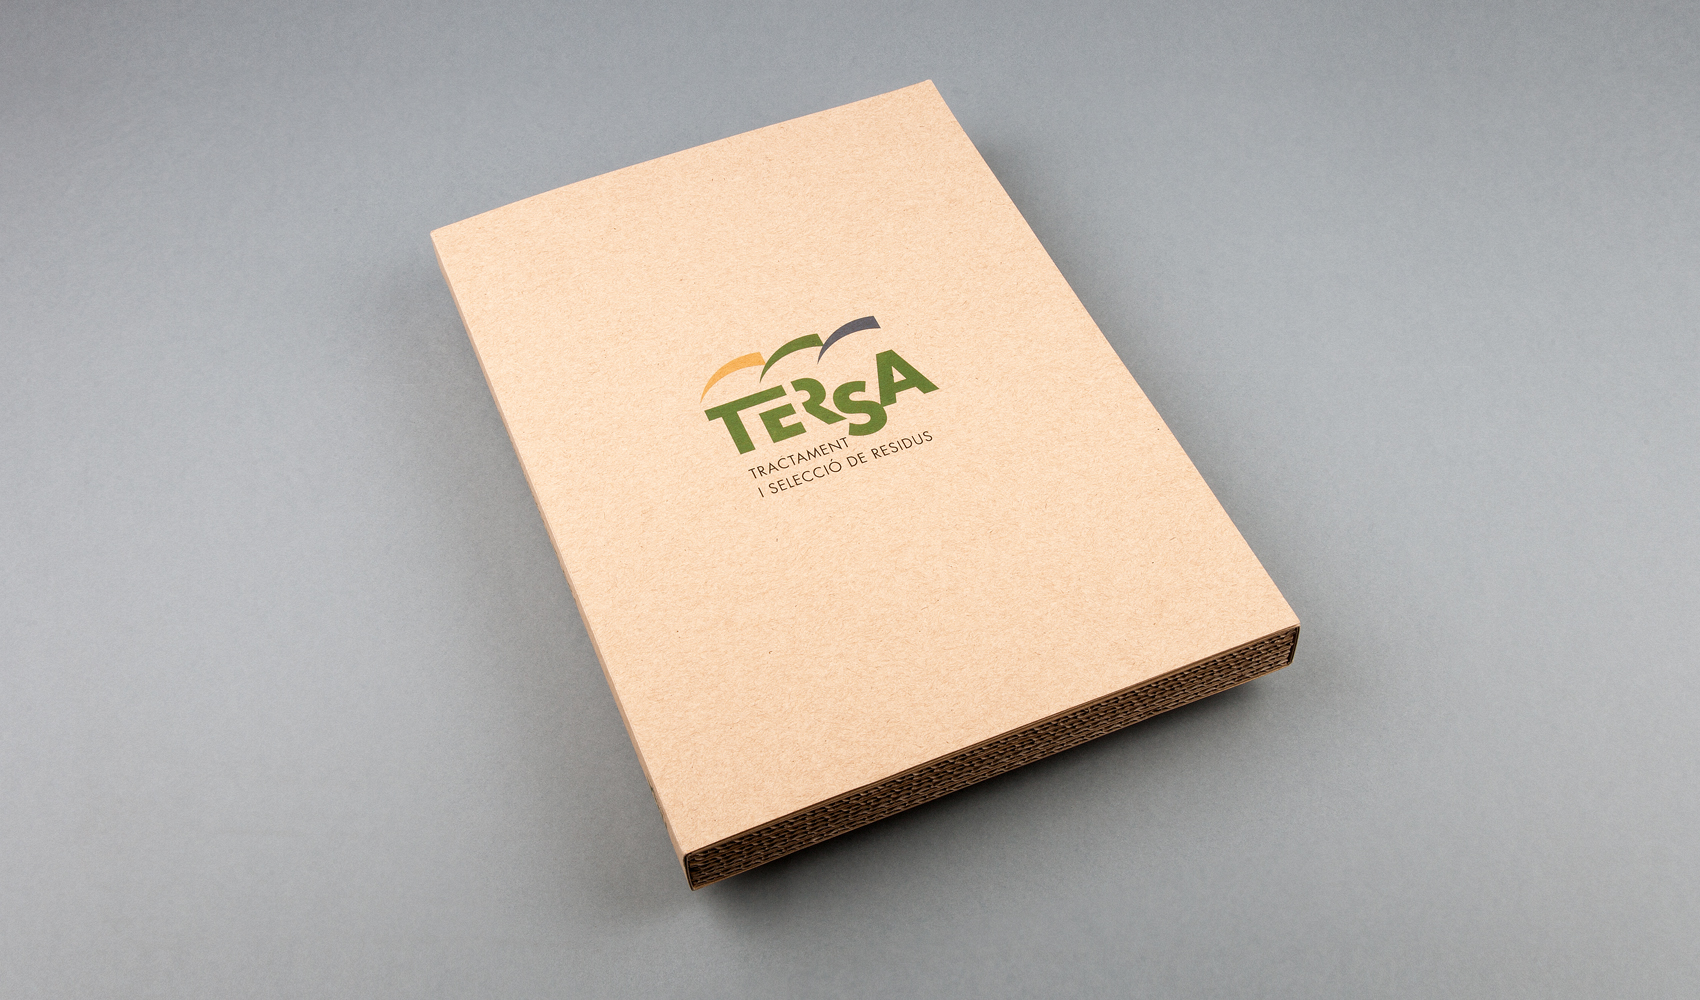 Tersa catalogue